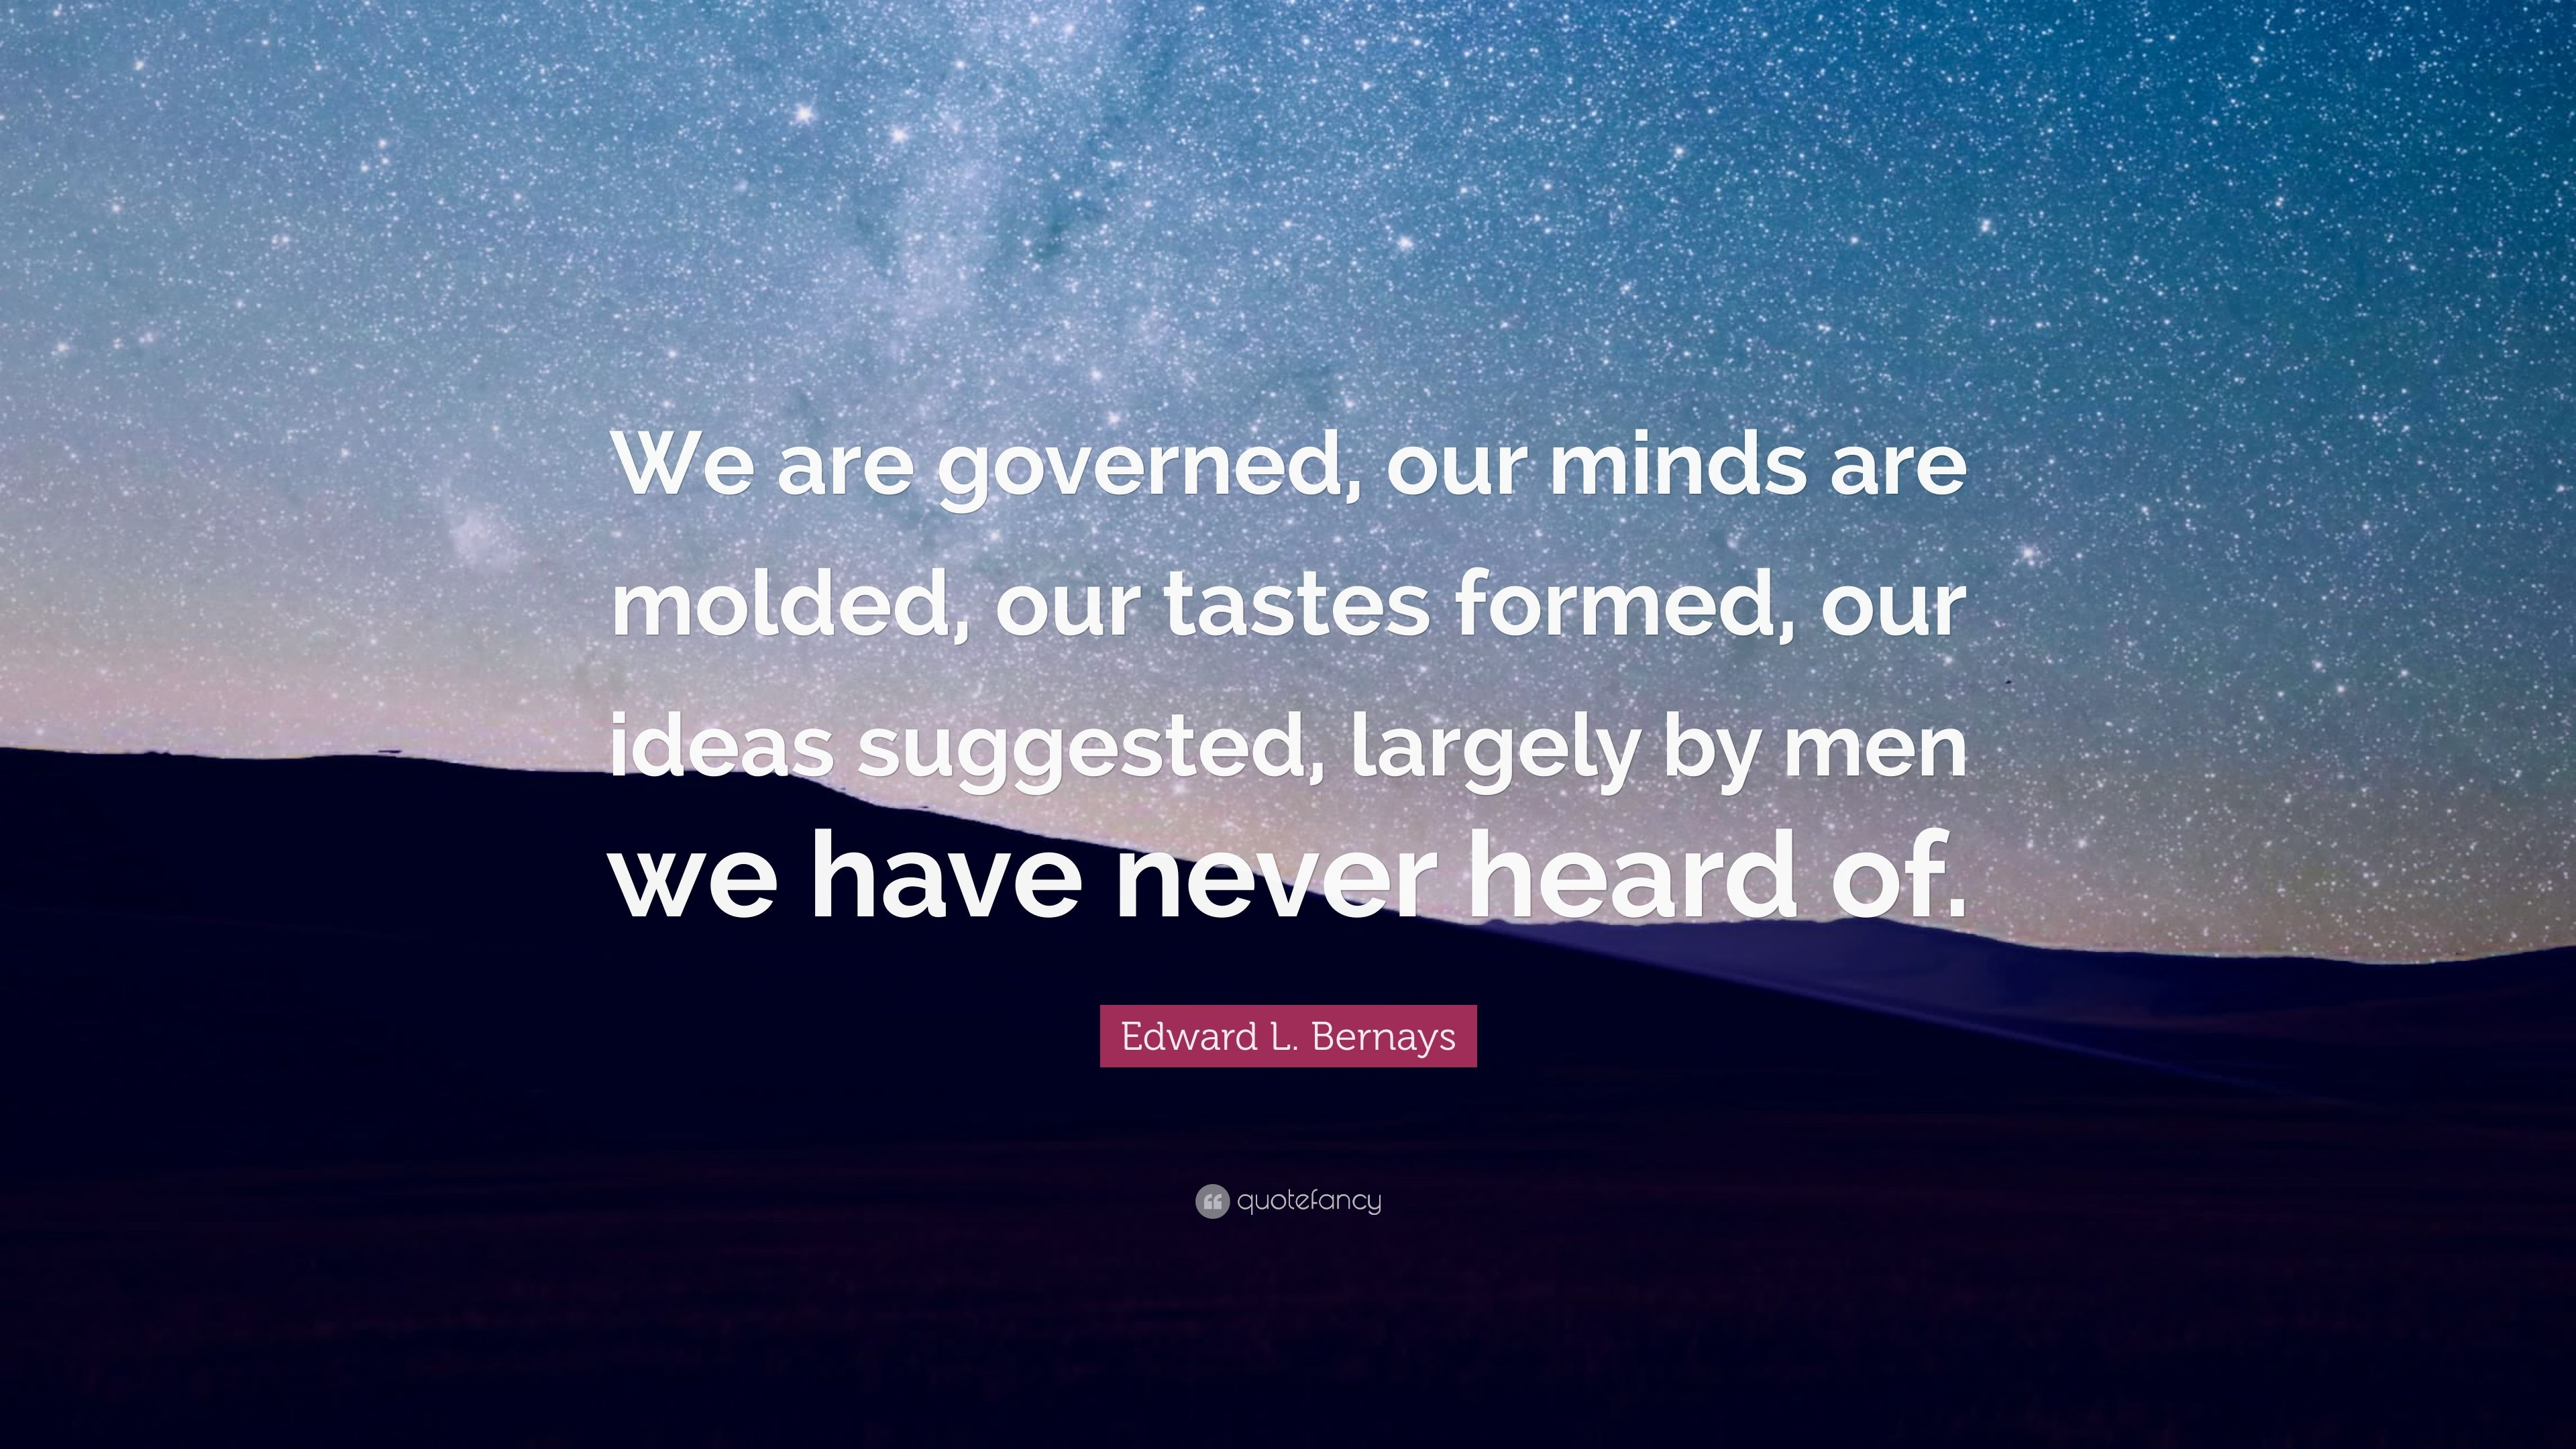 "edward l bernays ""the conscious and intelligent manipulation of the organized habits and opinions of the masses is an important element in democratic society those who manipulate this unseen mechanism of society constitute an invisible government which is the true ruling power of our country."